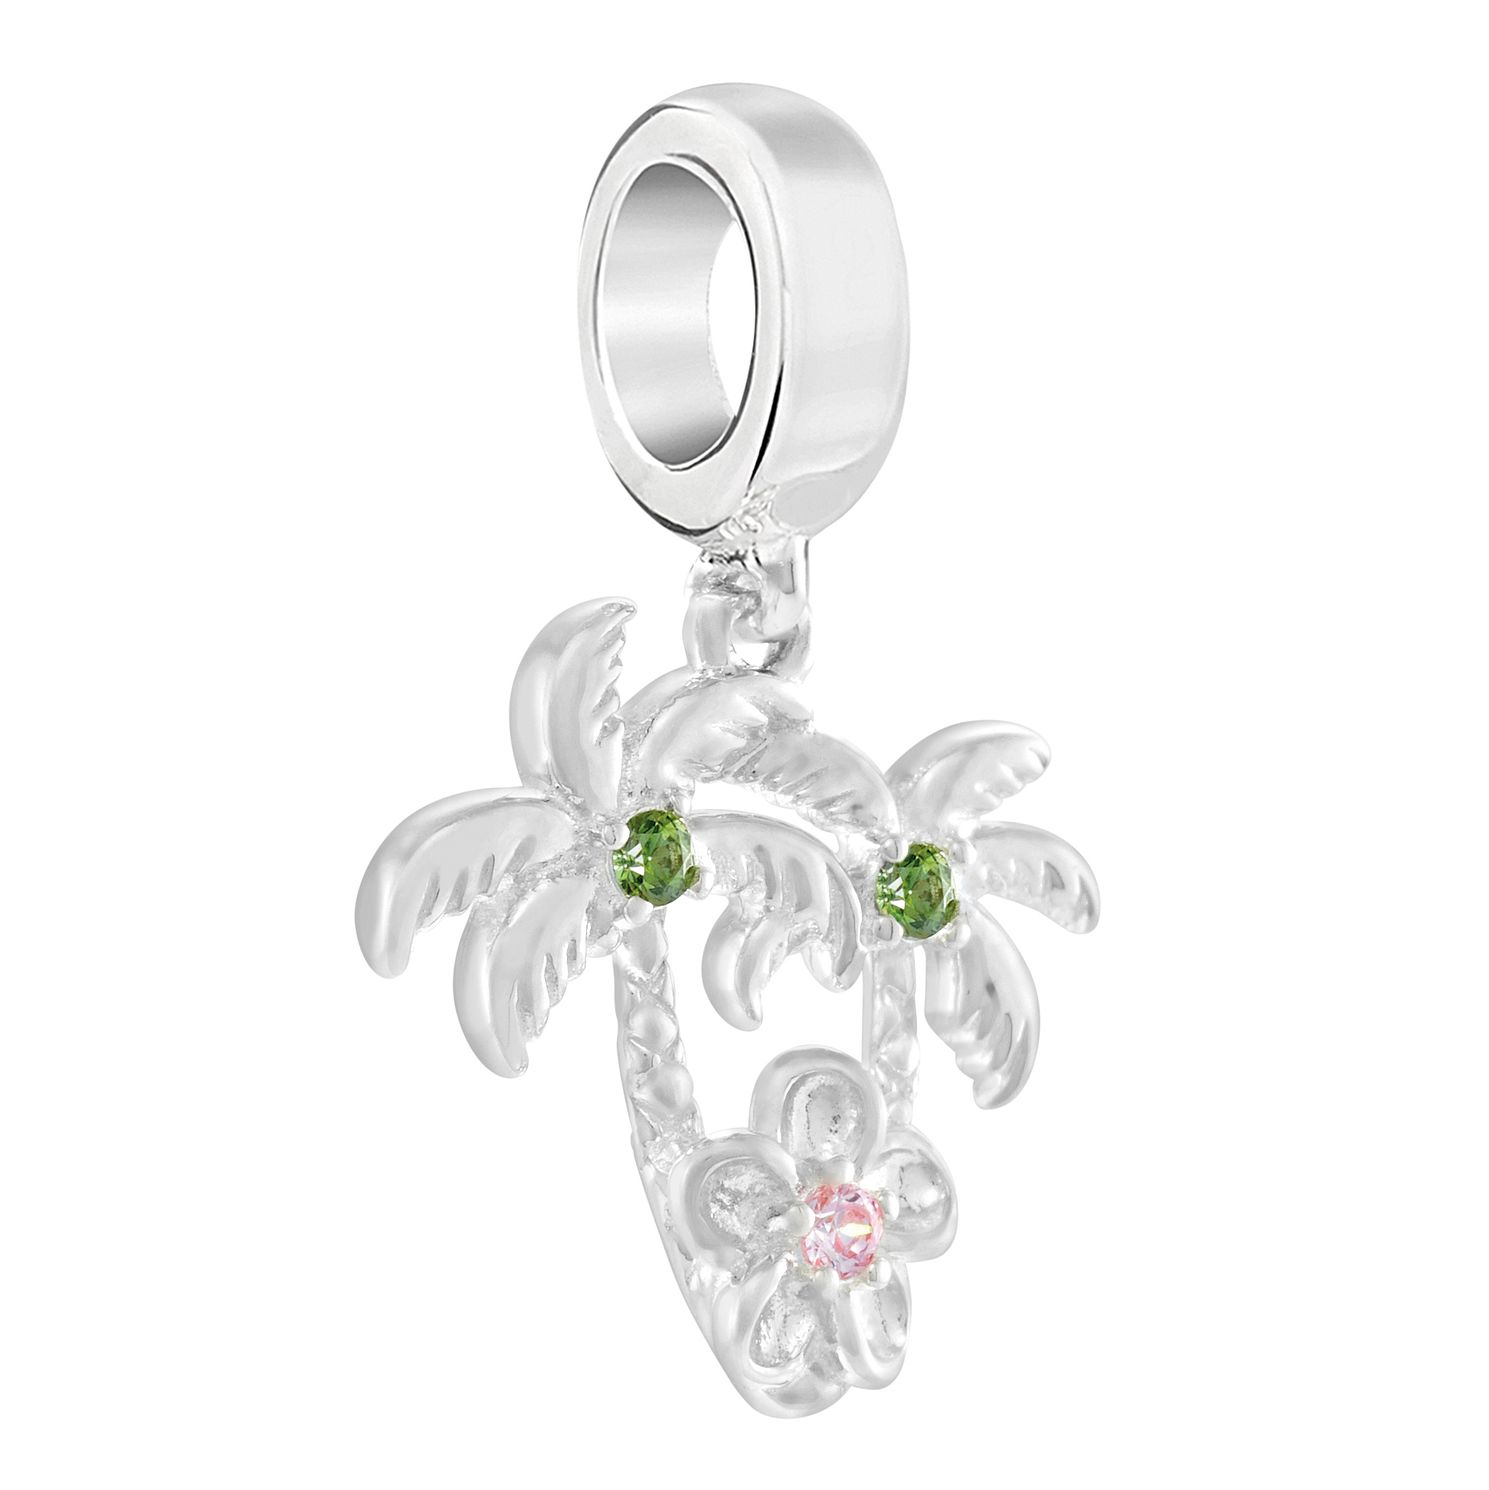 Chamilia Plumeria Palm Trees Morganite Charm - Product number 3175235